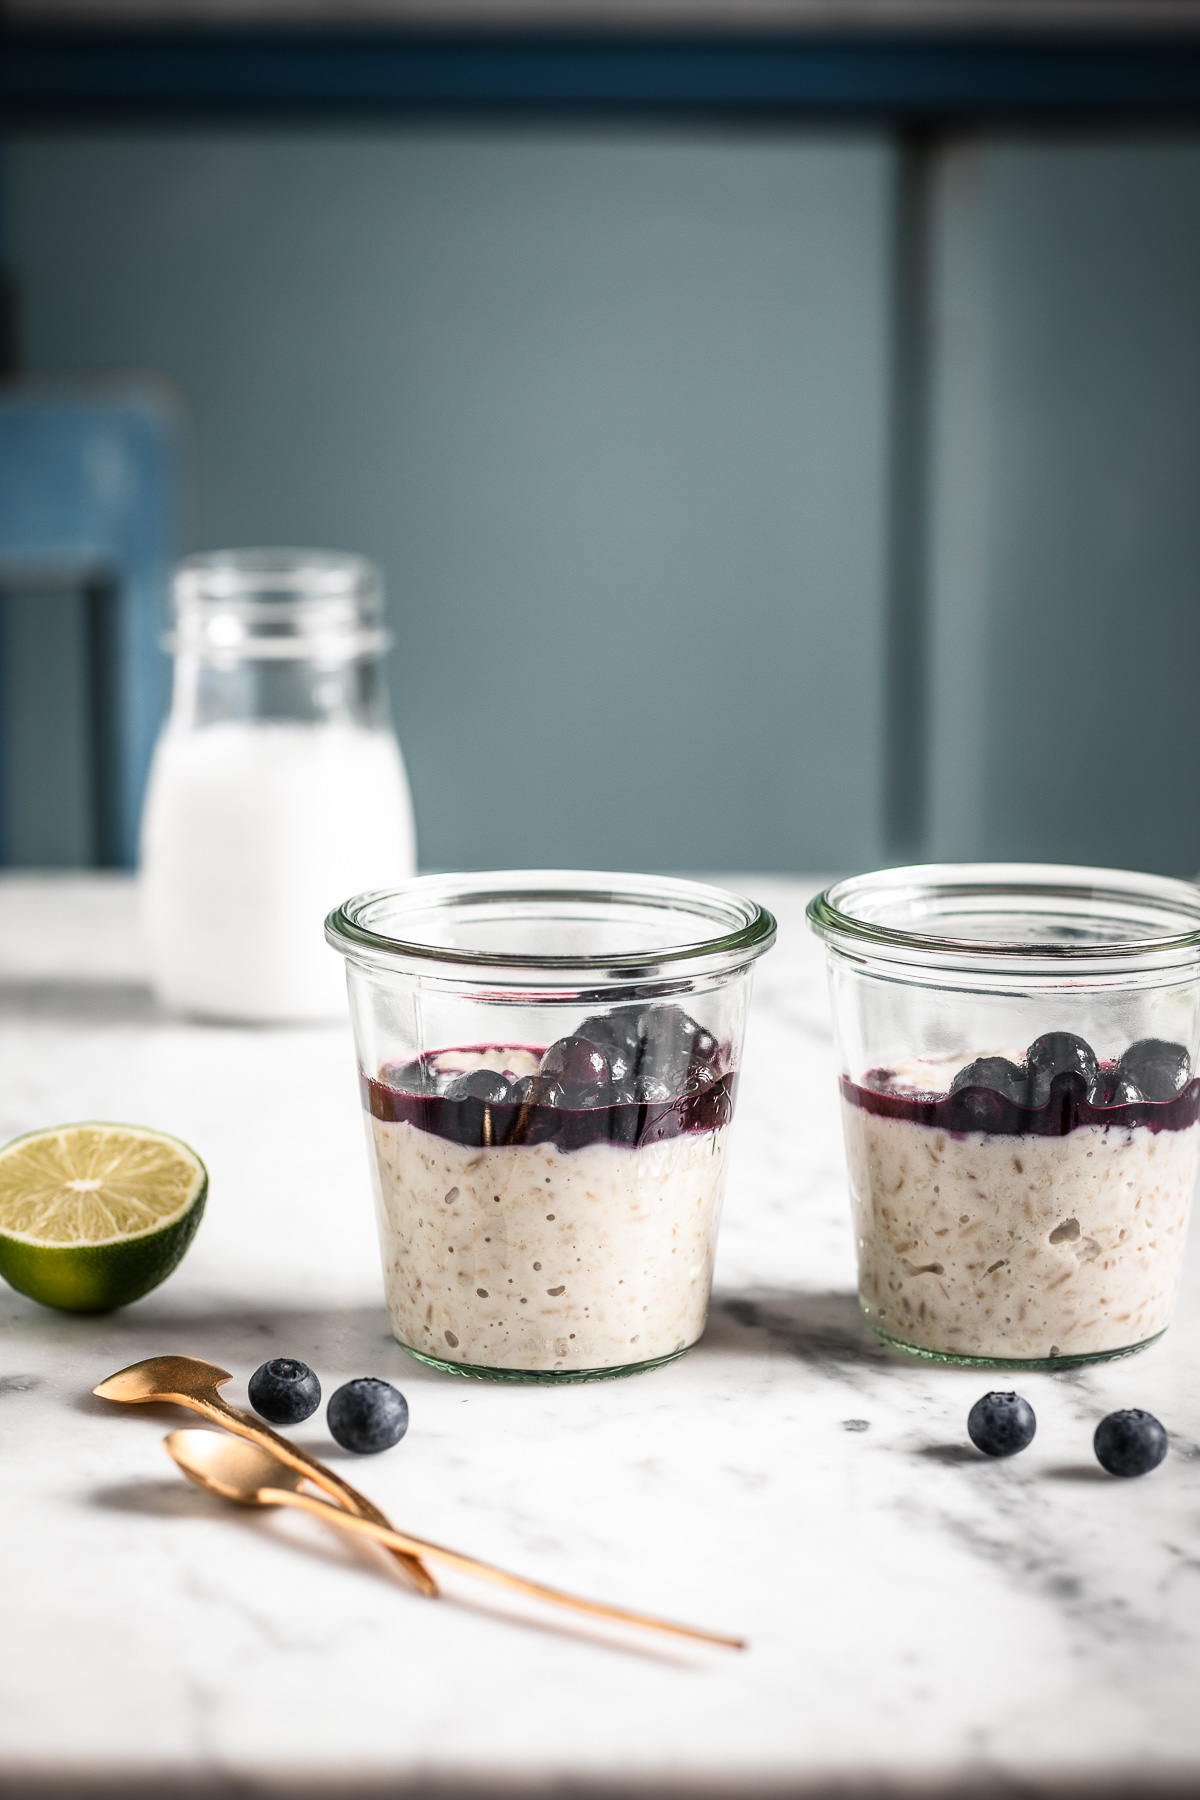 how to make the perfect creamy vegan gluten free blueberry steel cut oats recipe come fare il porridge di avena in chicchi perfetto #oatmeal #porridge